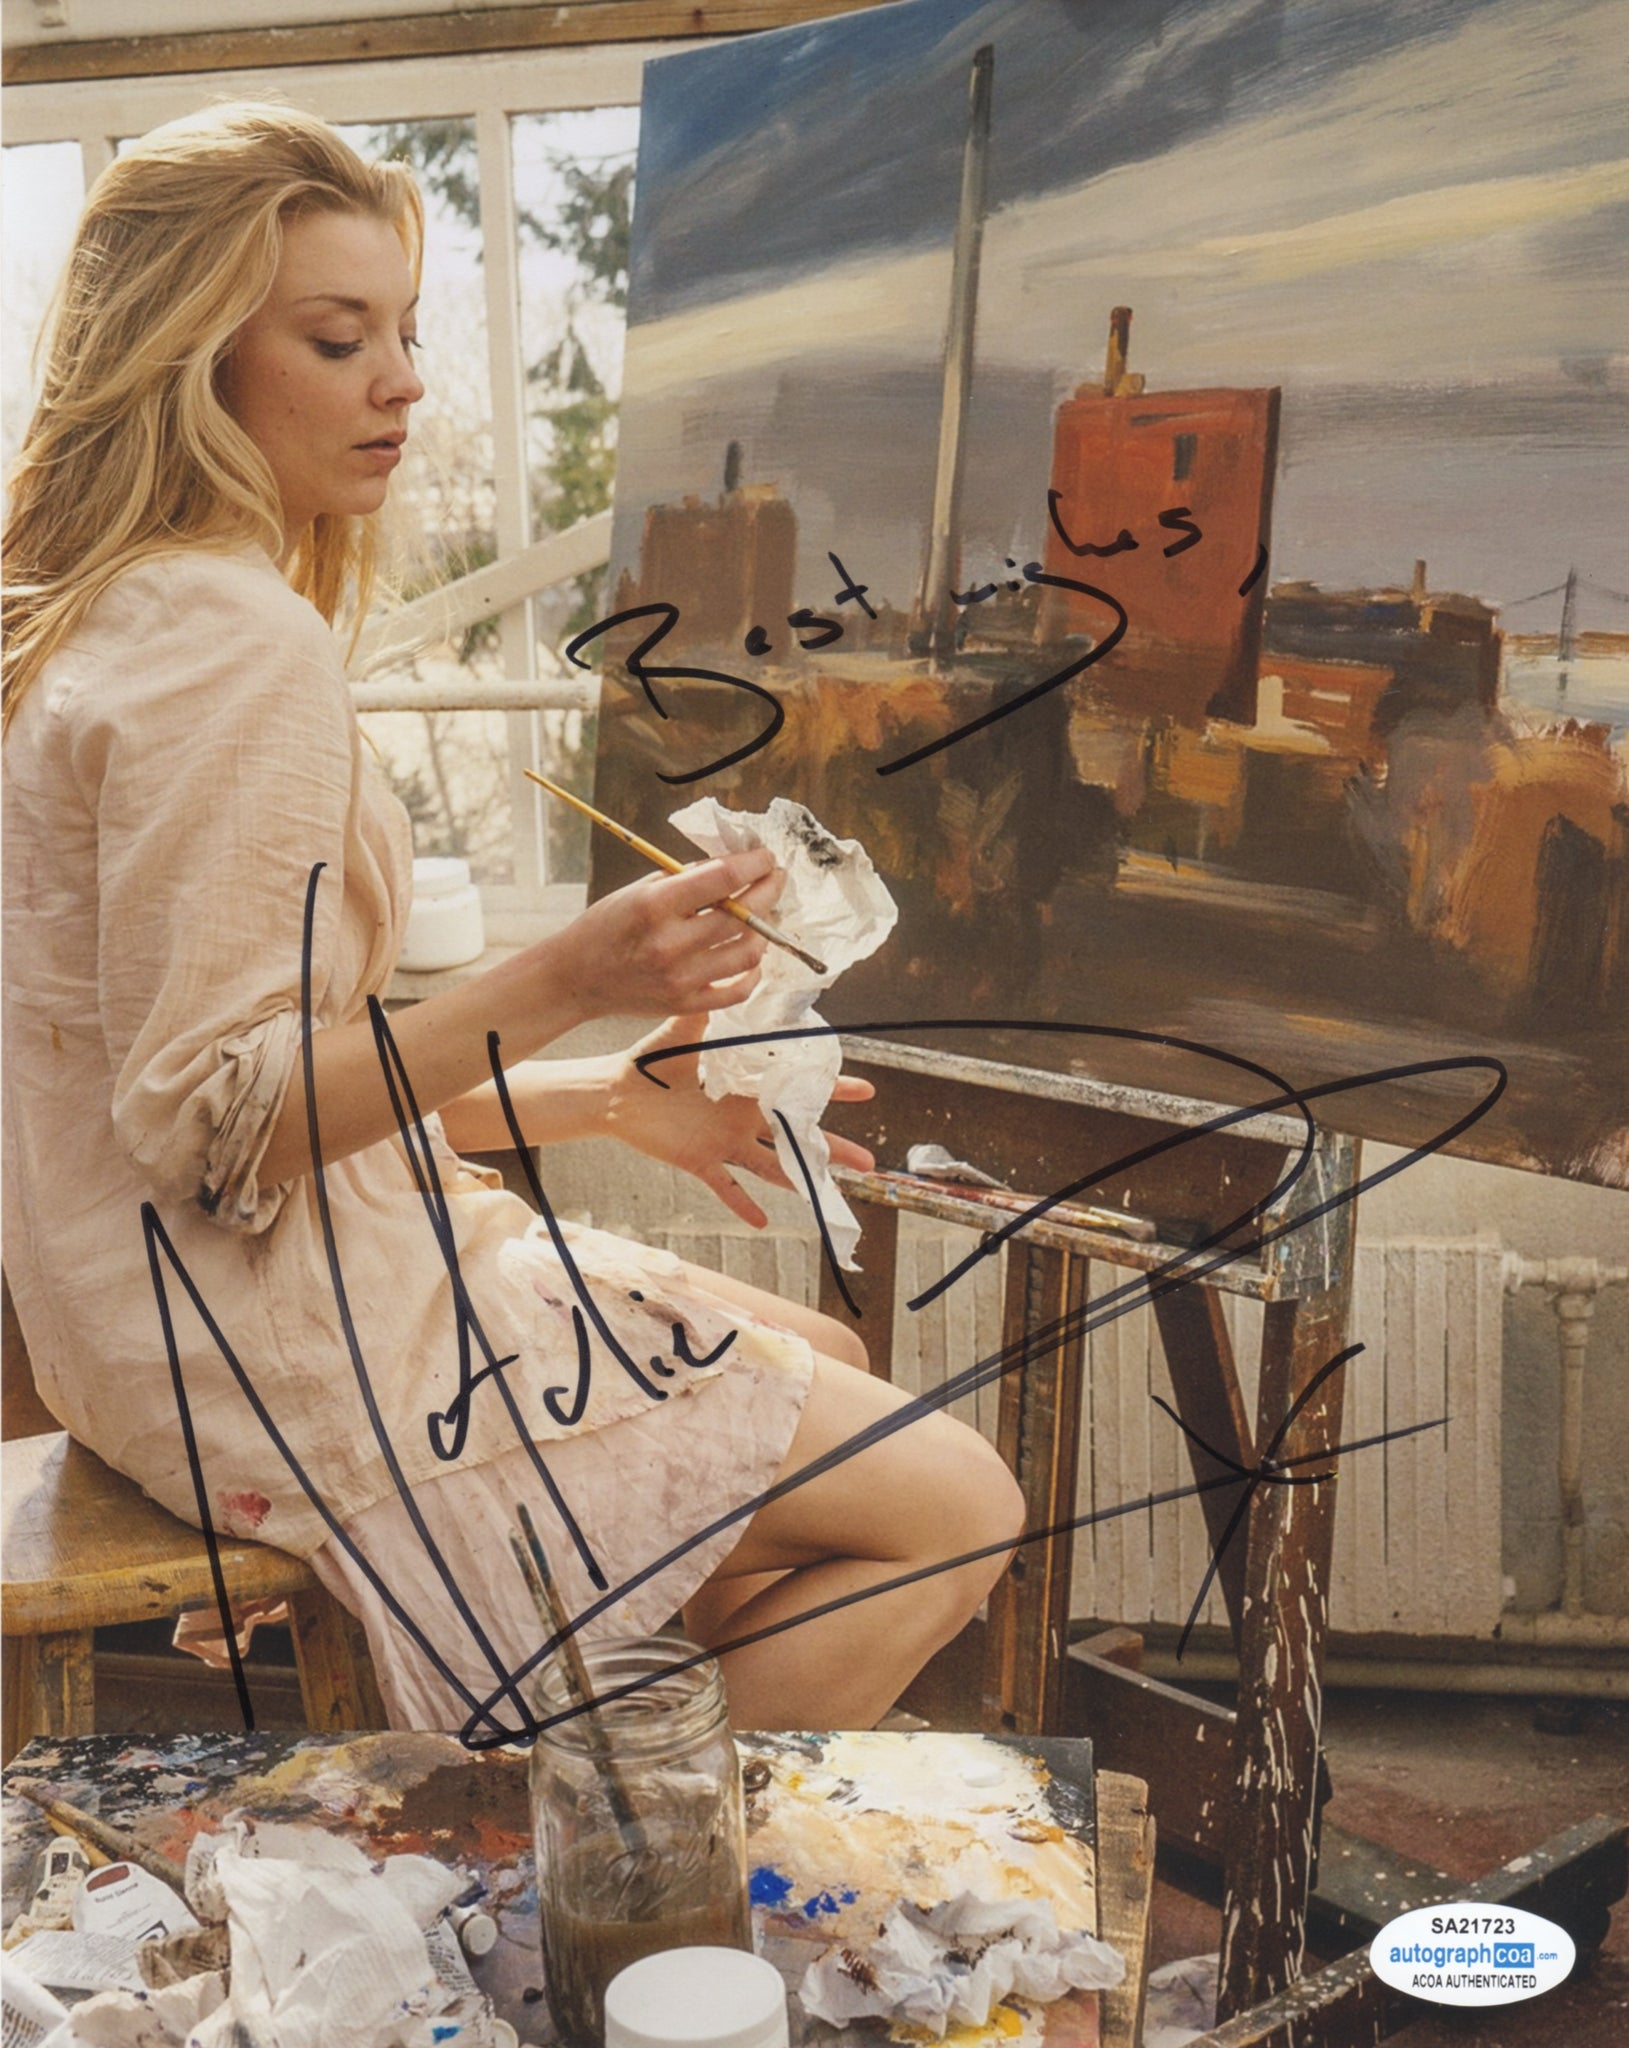 Natalie Dormer Sexy Elementary Signed Autograph 8x10 Photo #27 - Outlaw Hobbies Authentic Autographs